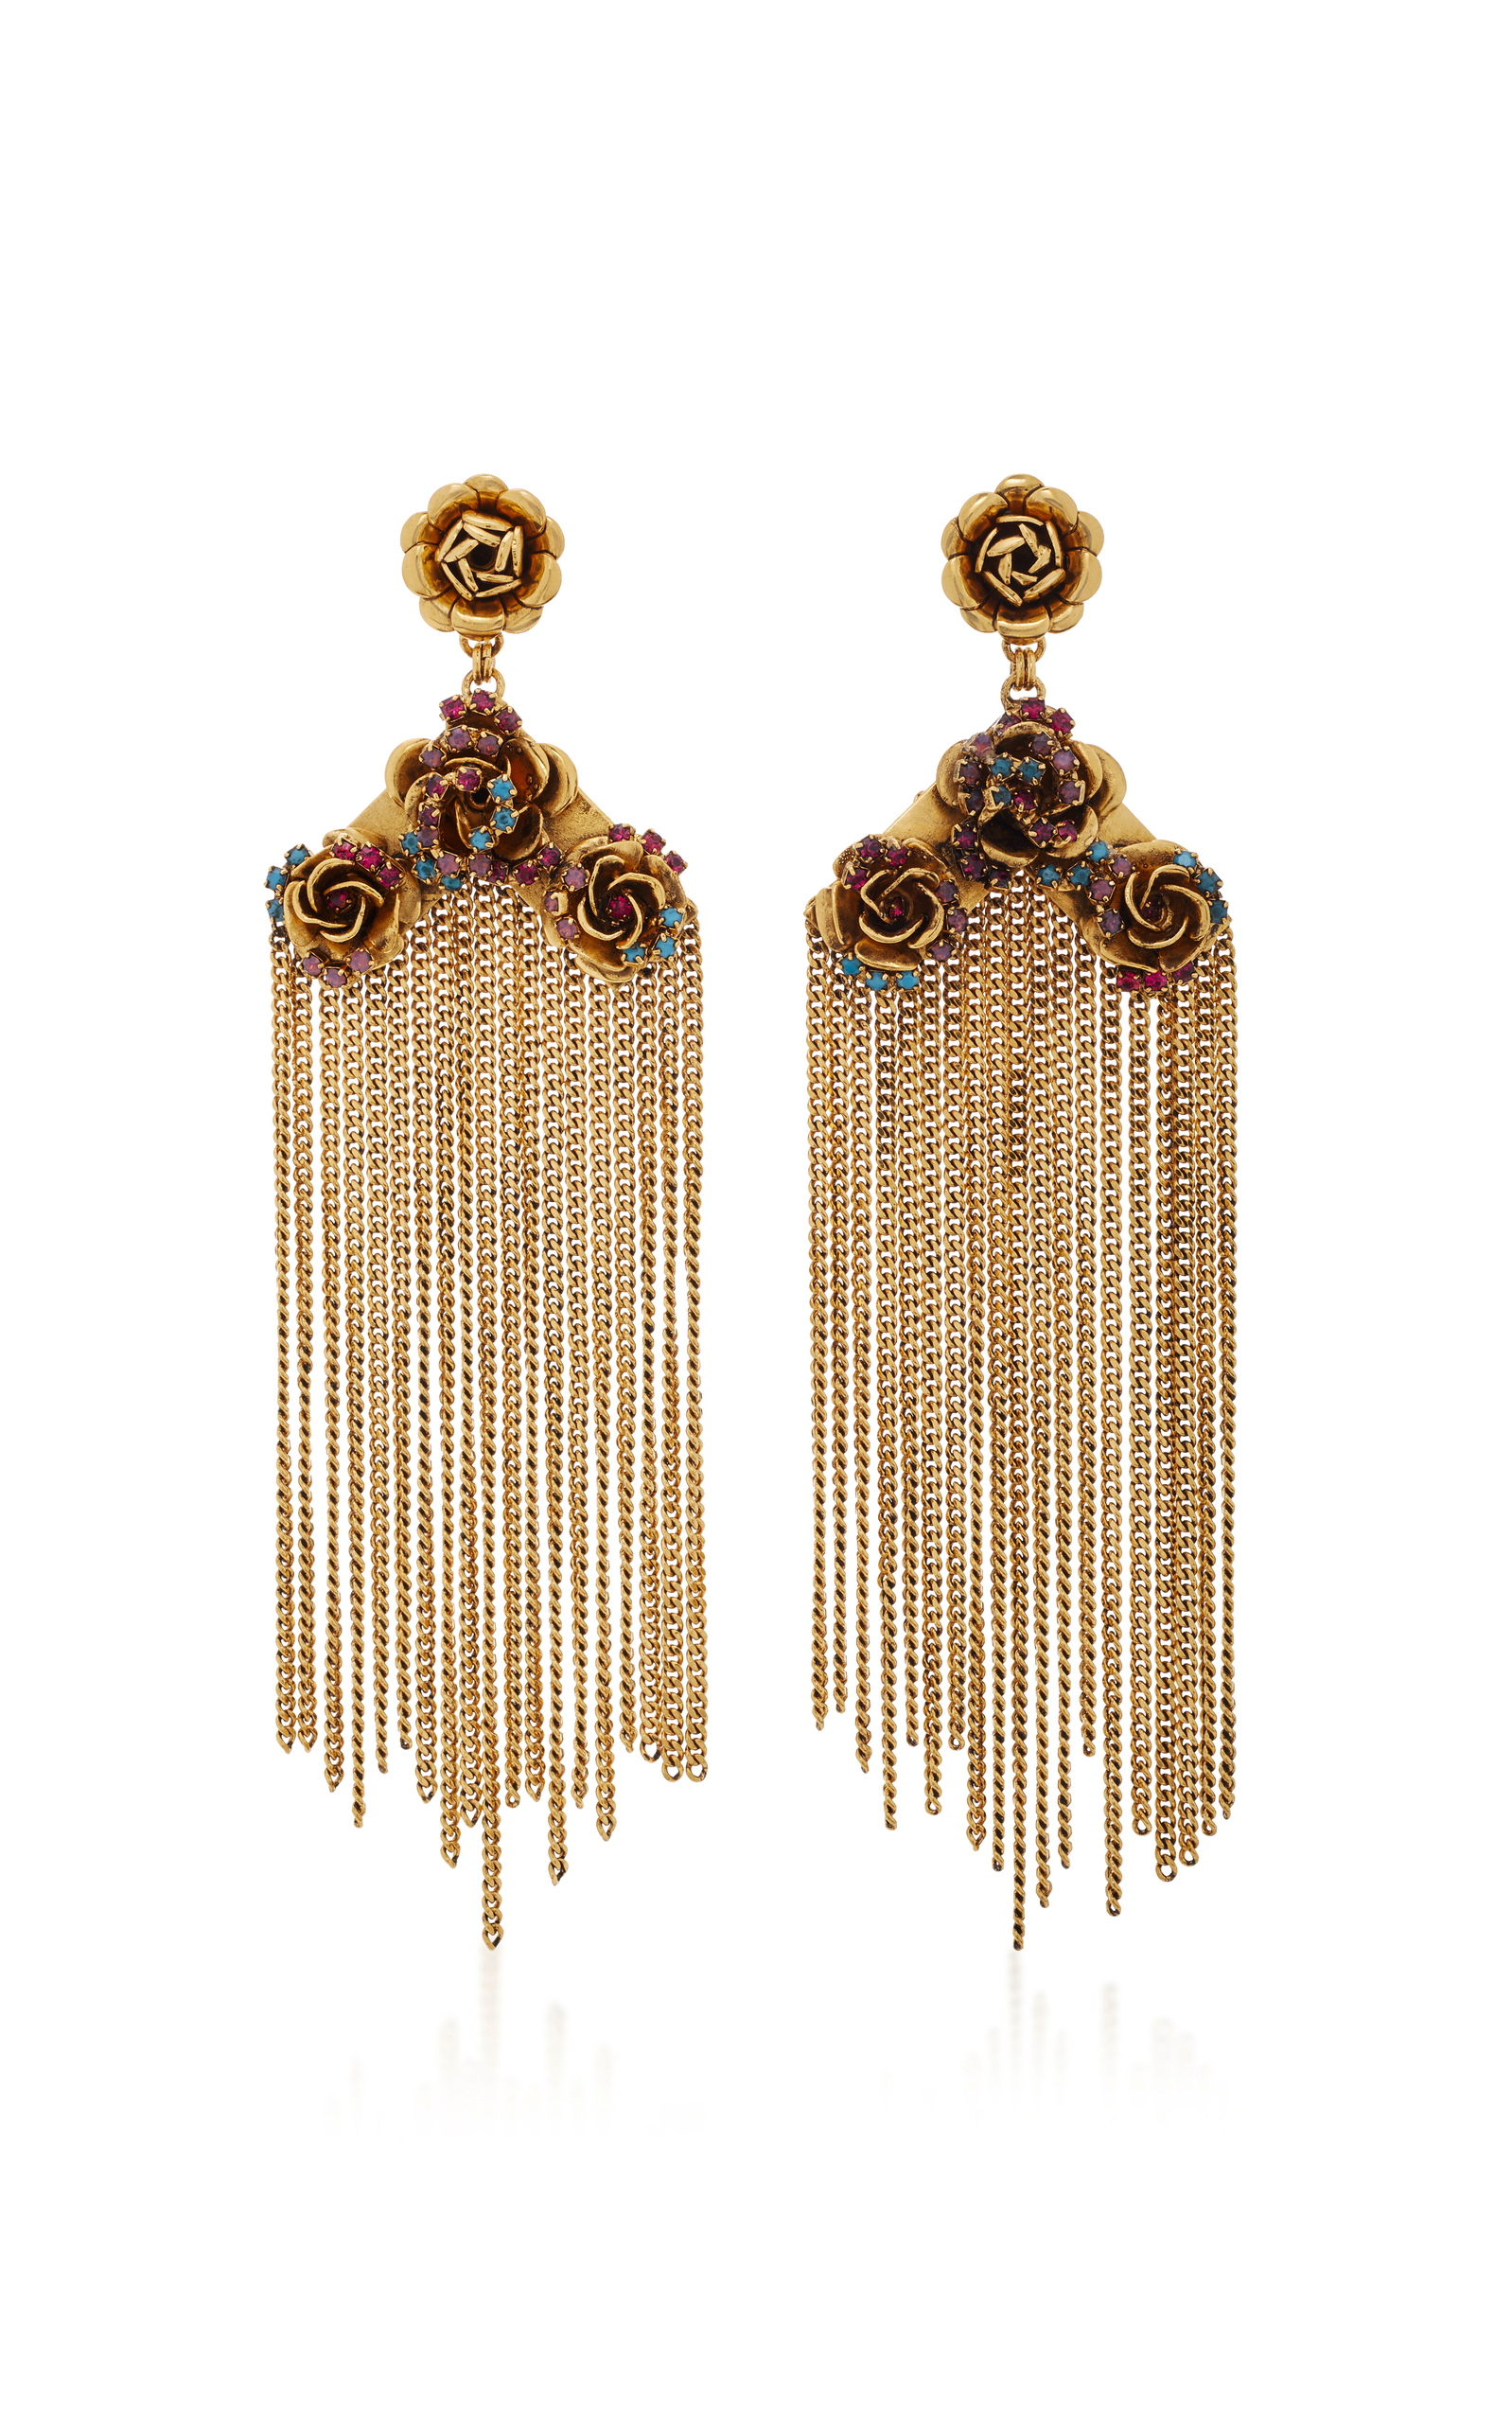 global products house nude teardrop brass fringe earrings earring mercy